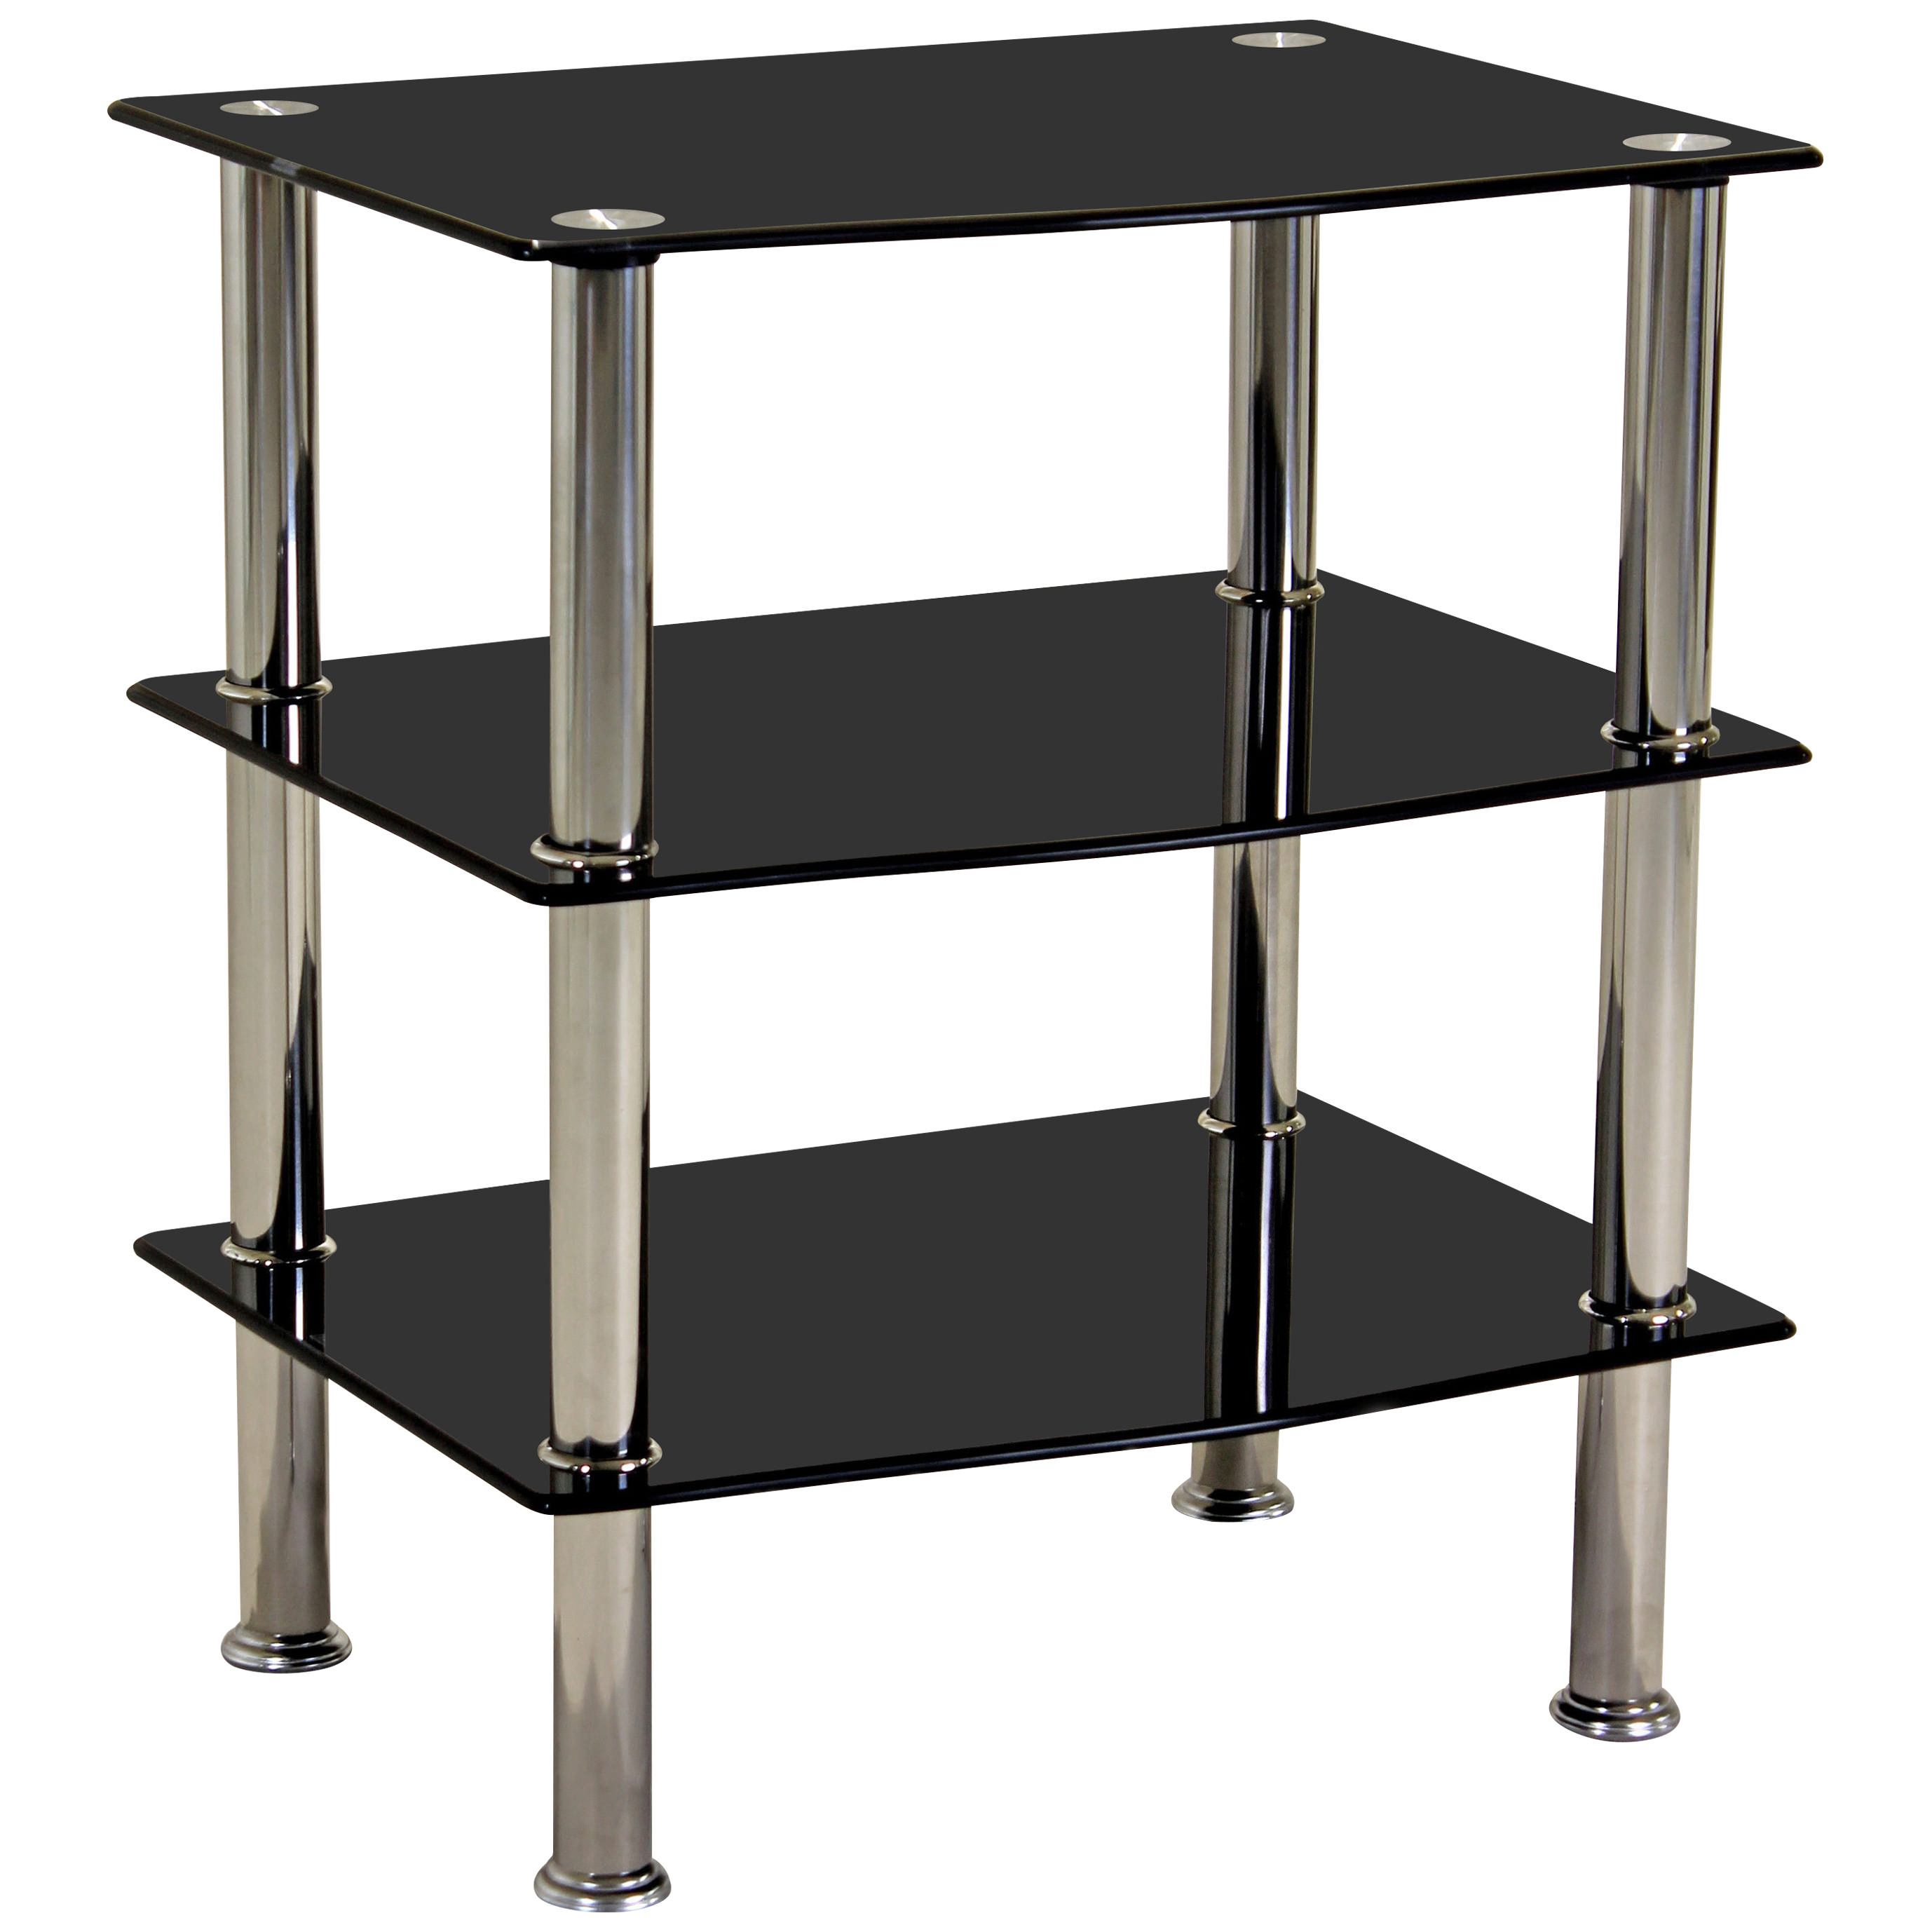 screens screen flat rolling comfortable for stand doors floor av pertaining with renovation carts best cart to throughout pedestal buy tv architecture mounts stands